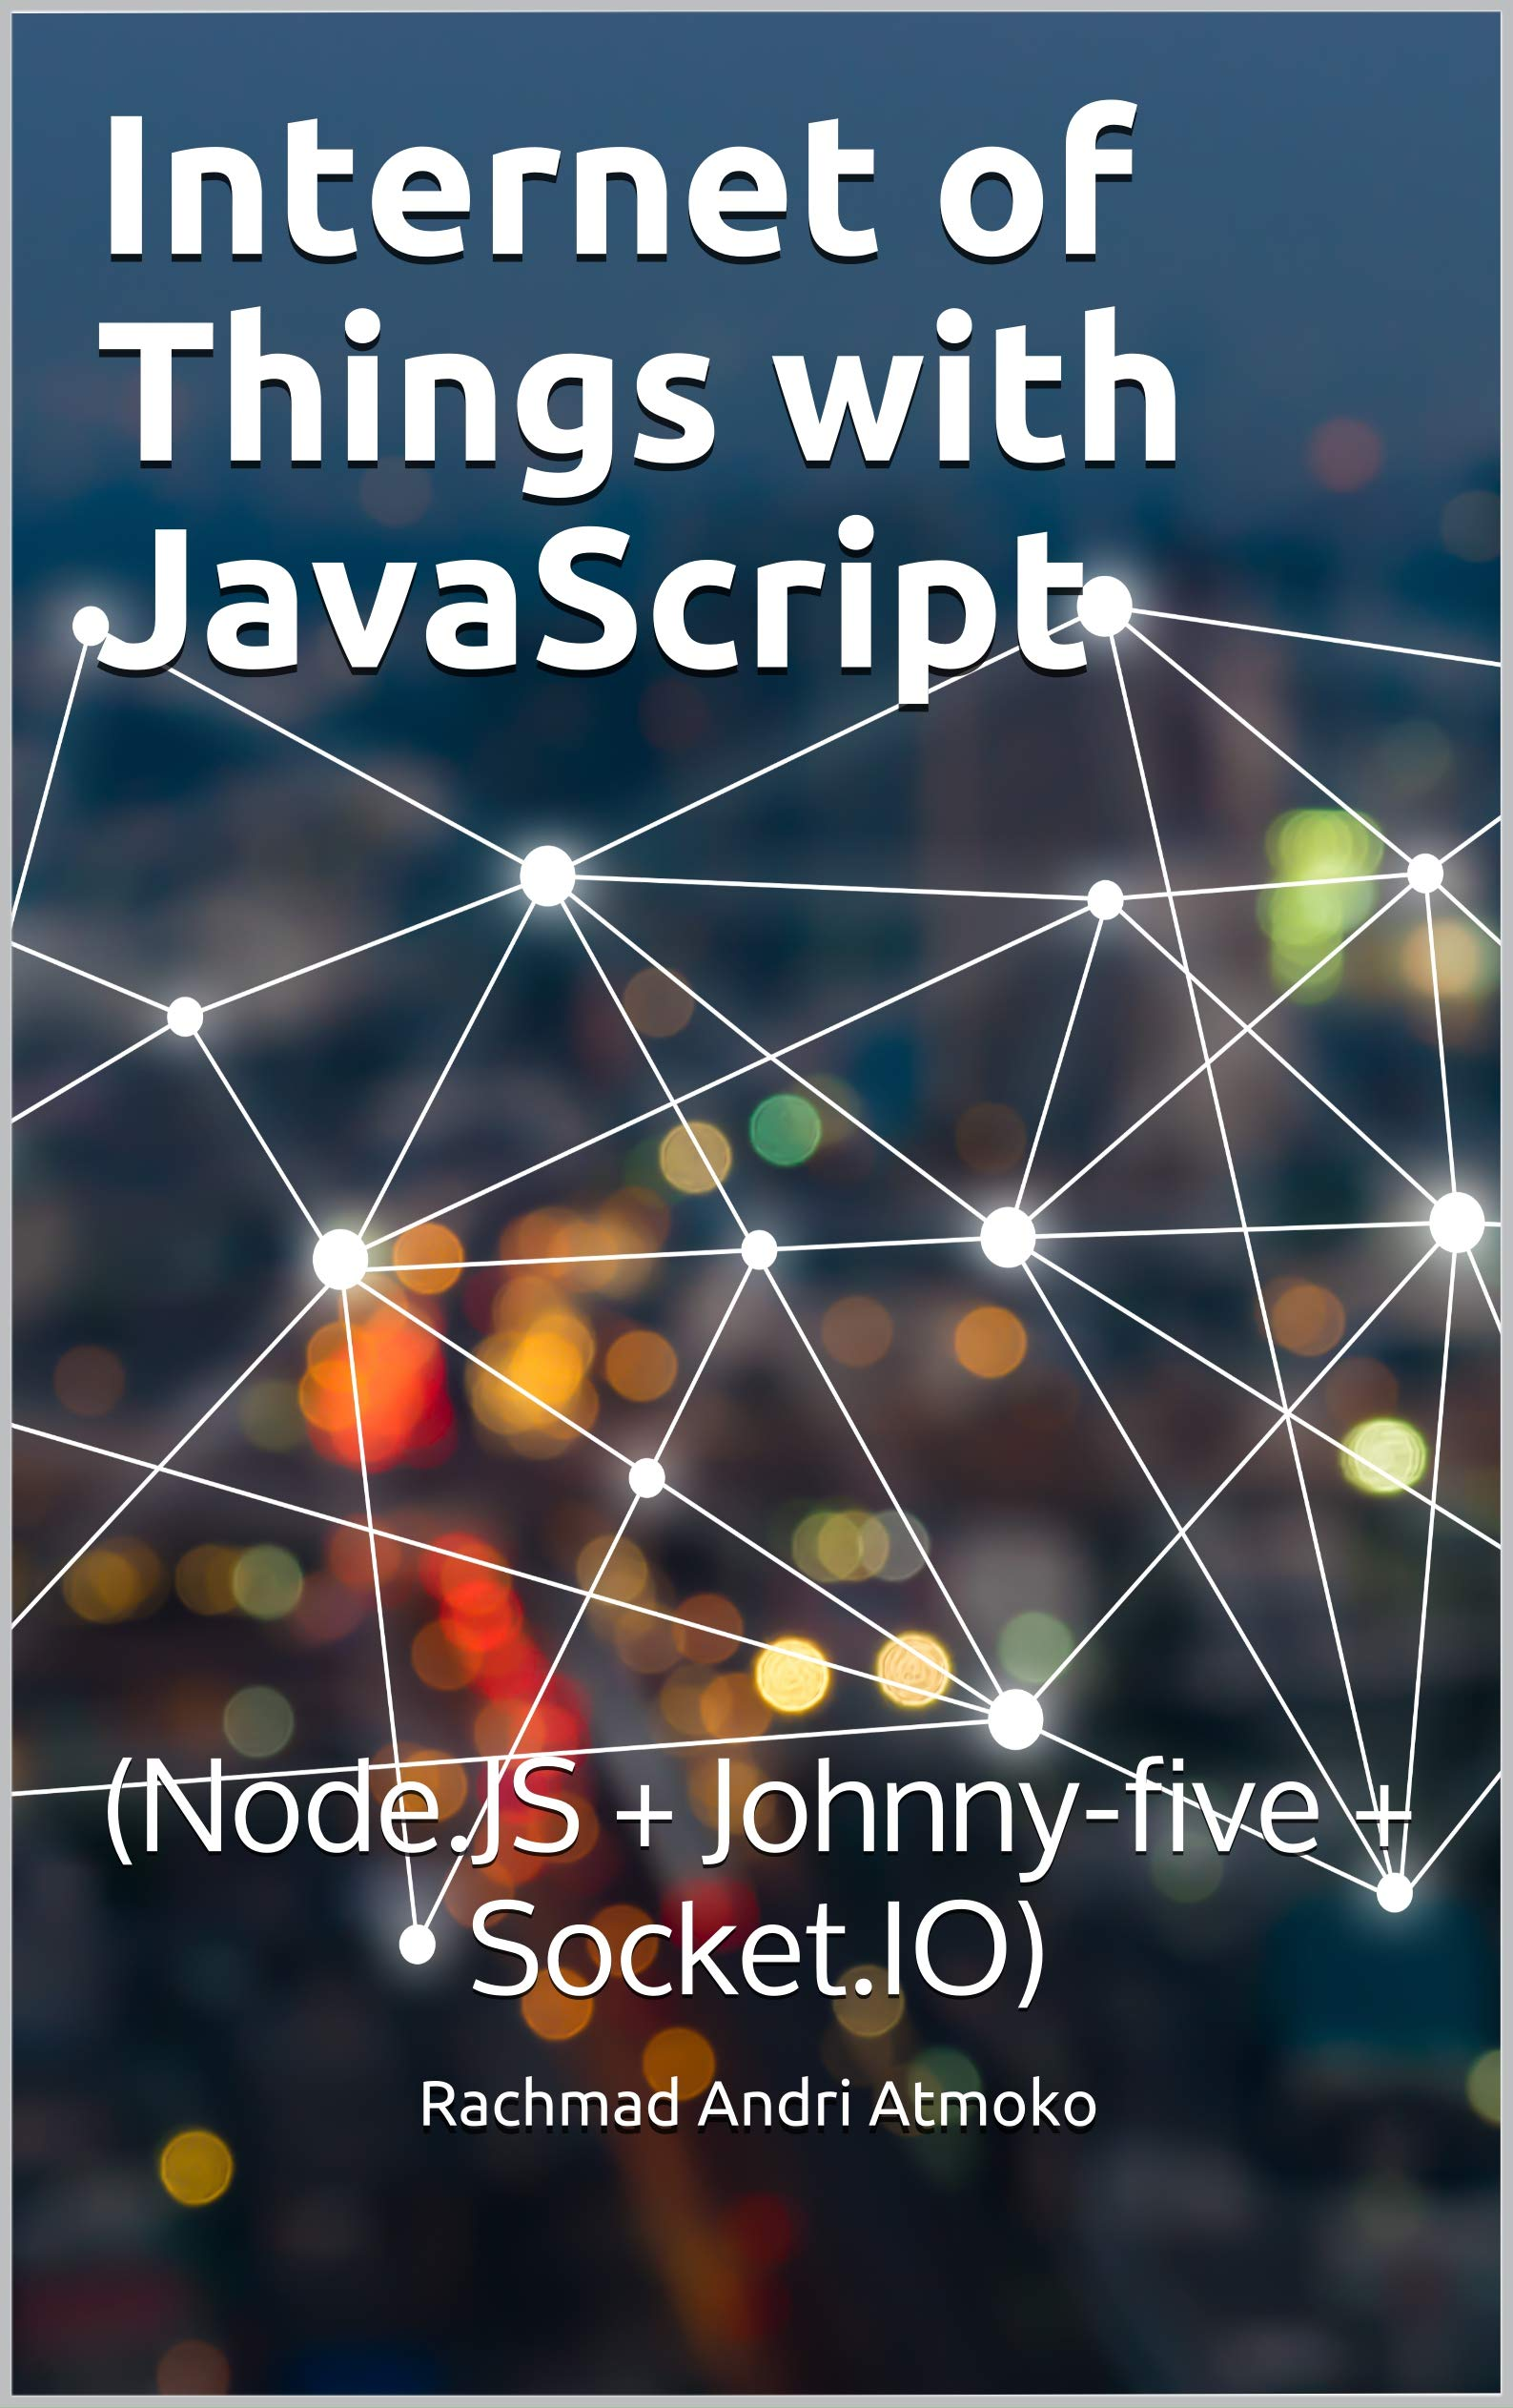 Internet of Things with JavaScript (Node.JS + Johnny-five + Socket.IO)